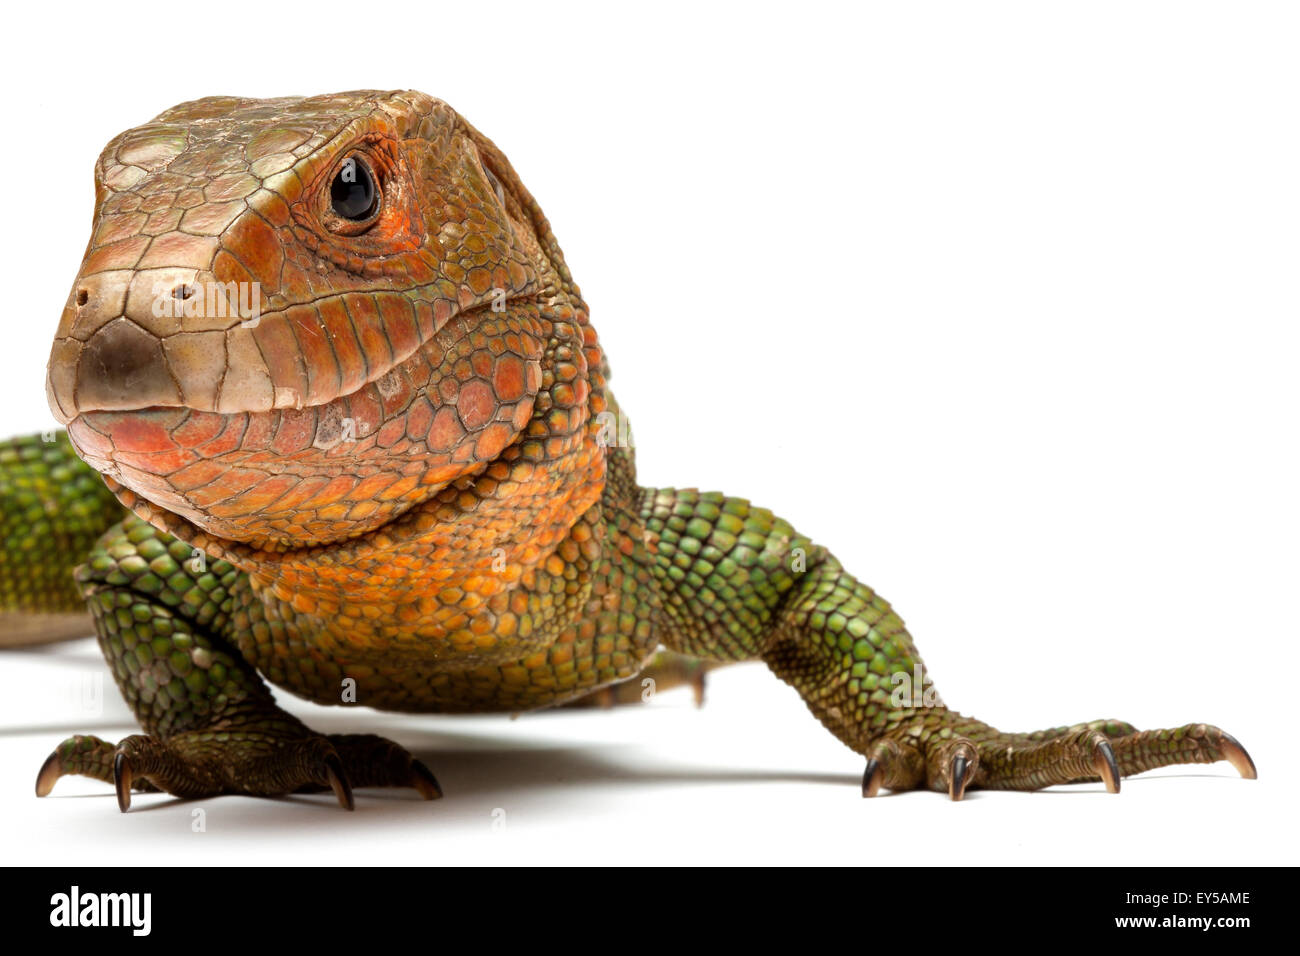 Guyana Caiman Lizard on white background Native to South America - Stock Image